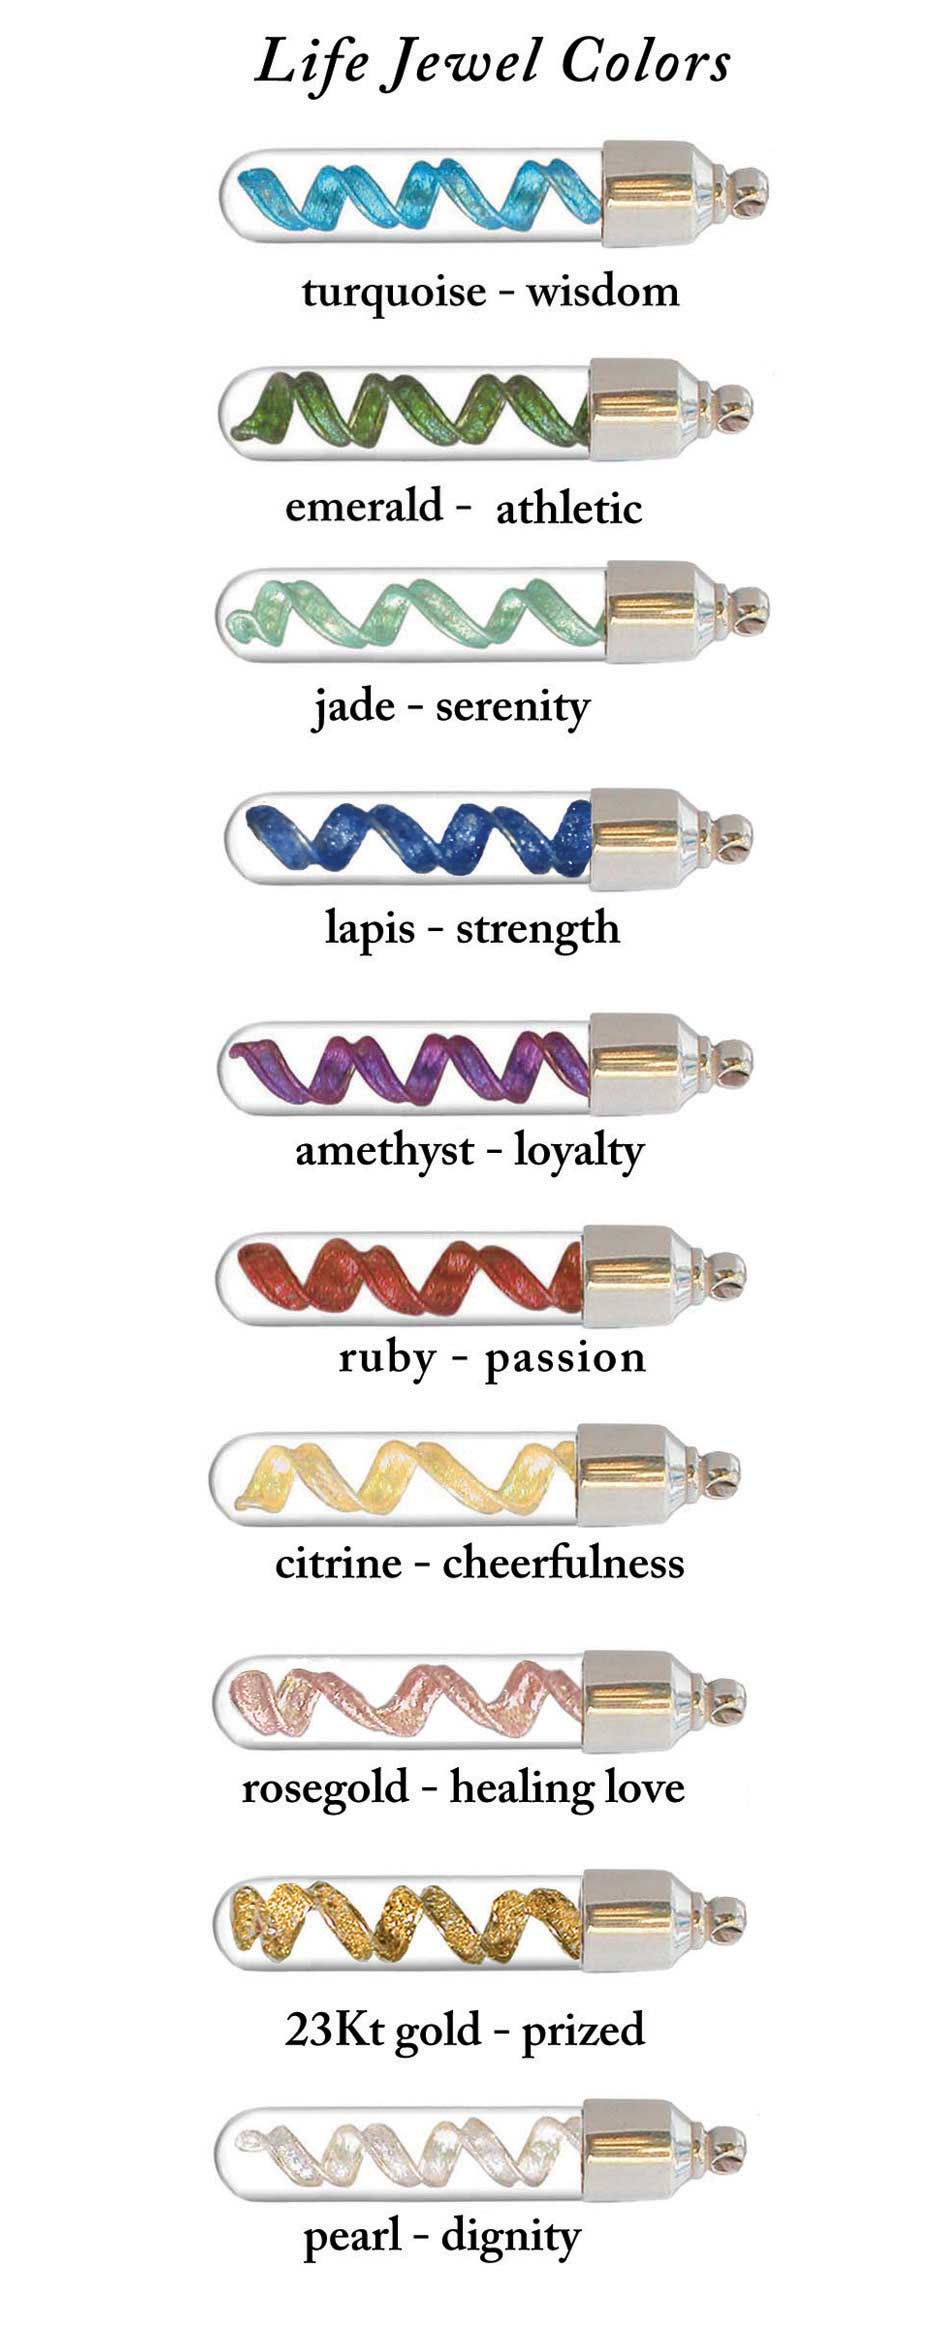 Life Jewel™ DNA Color Choices